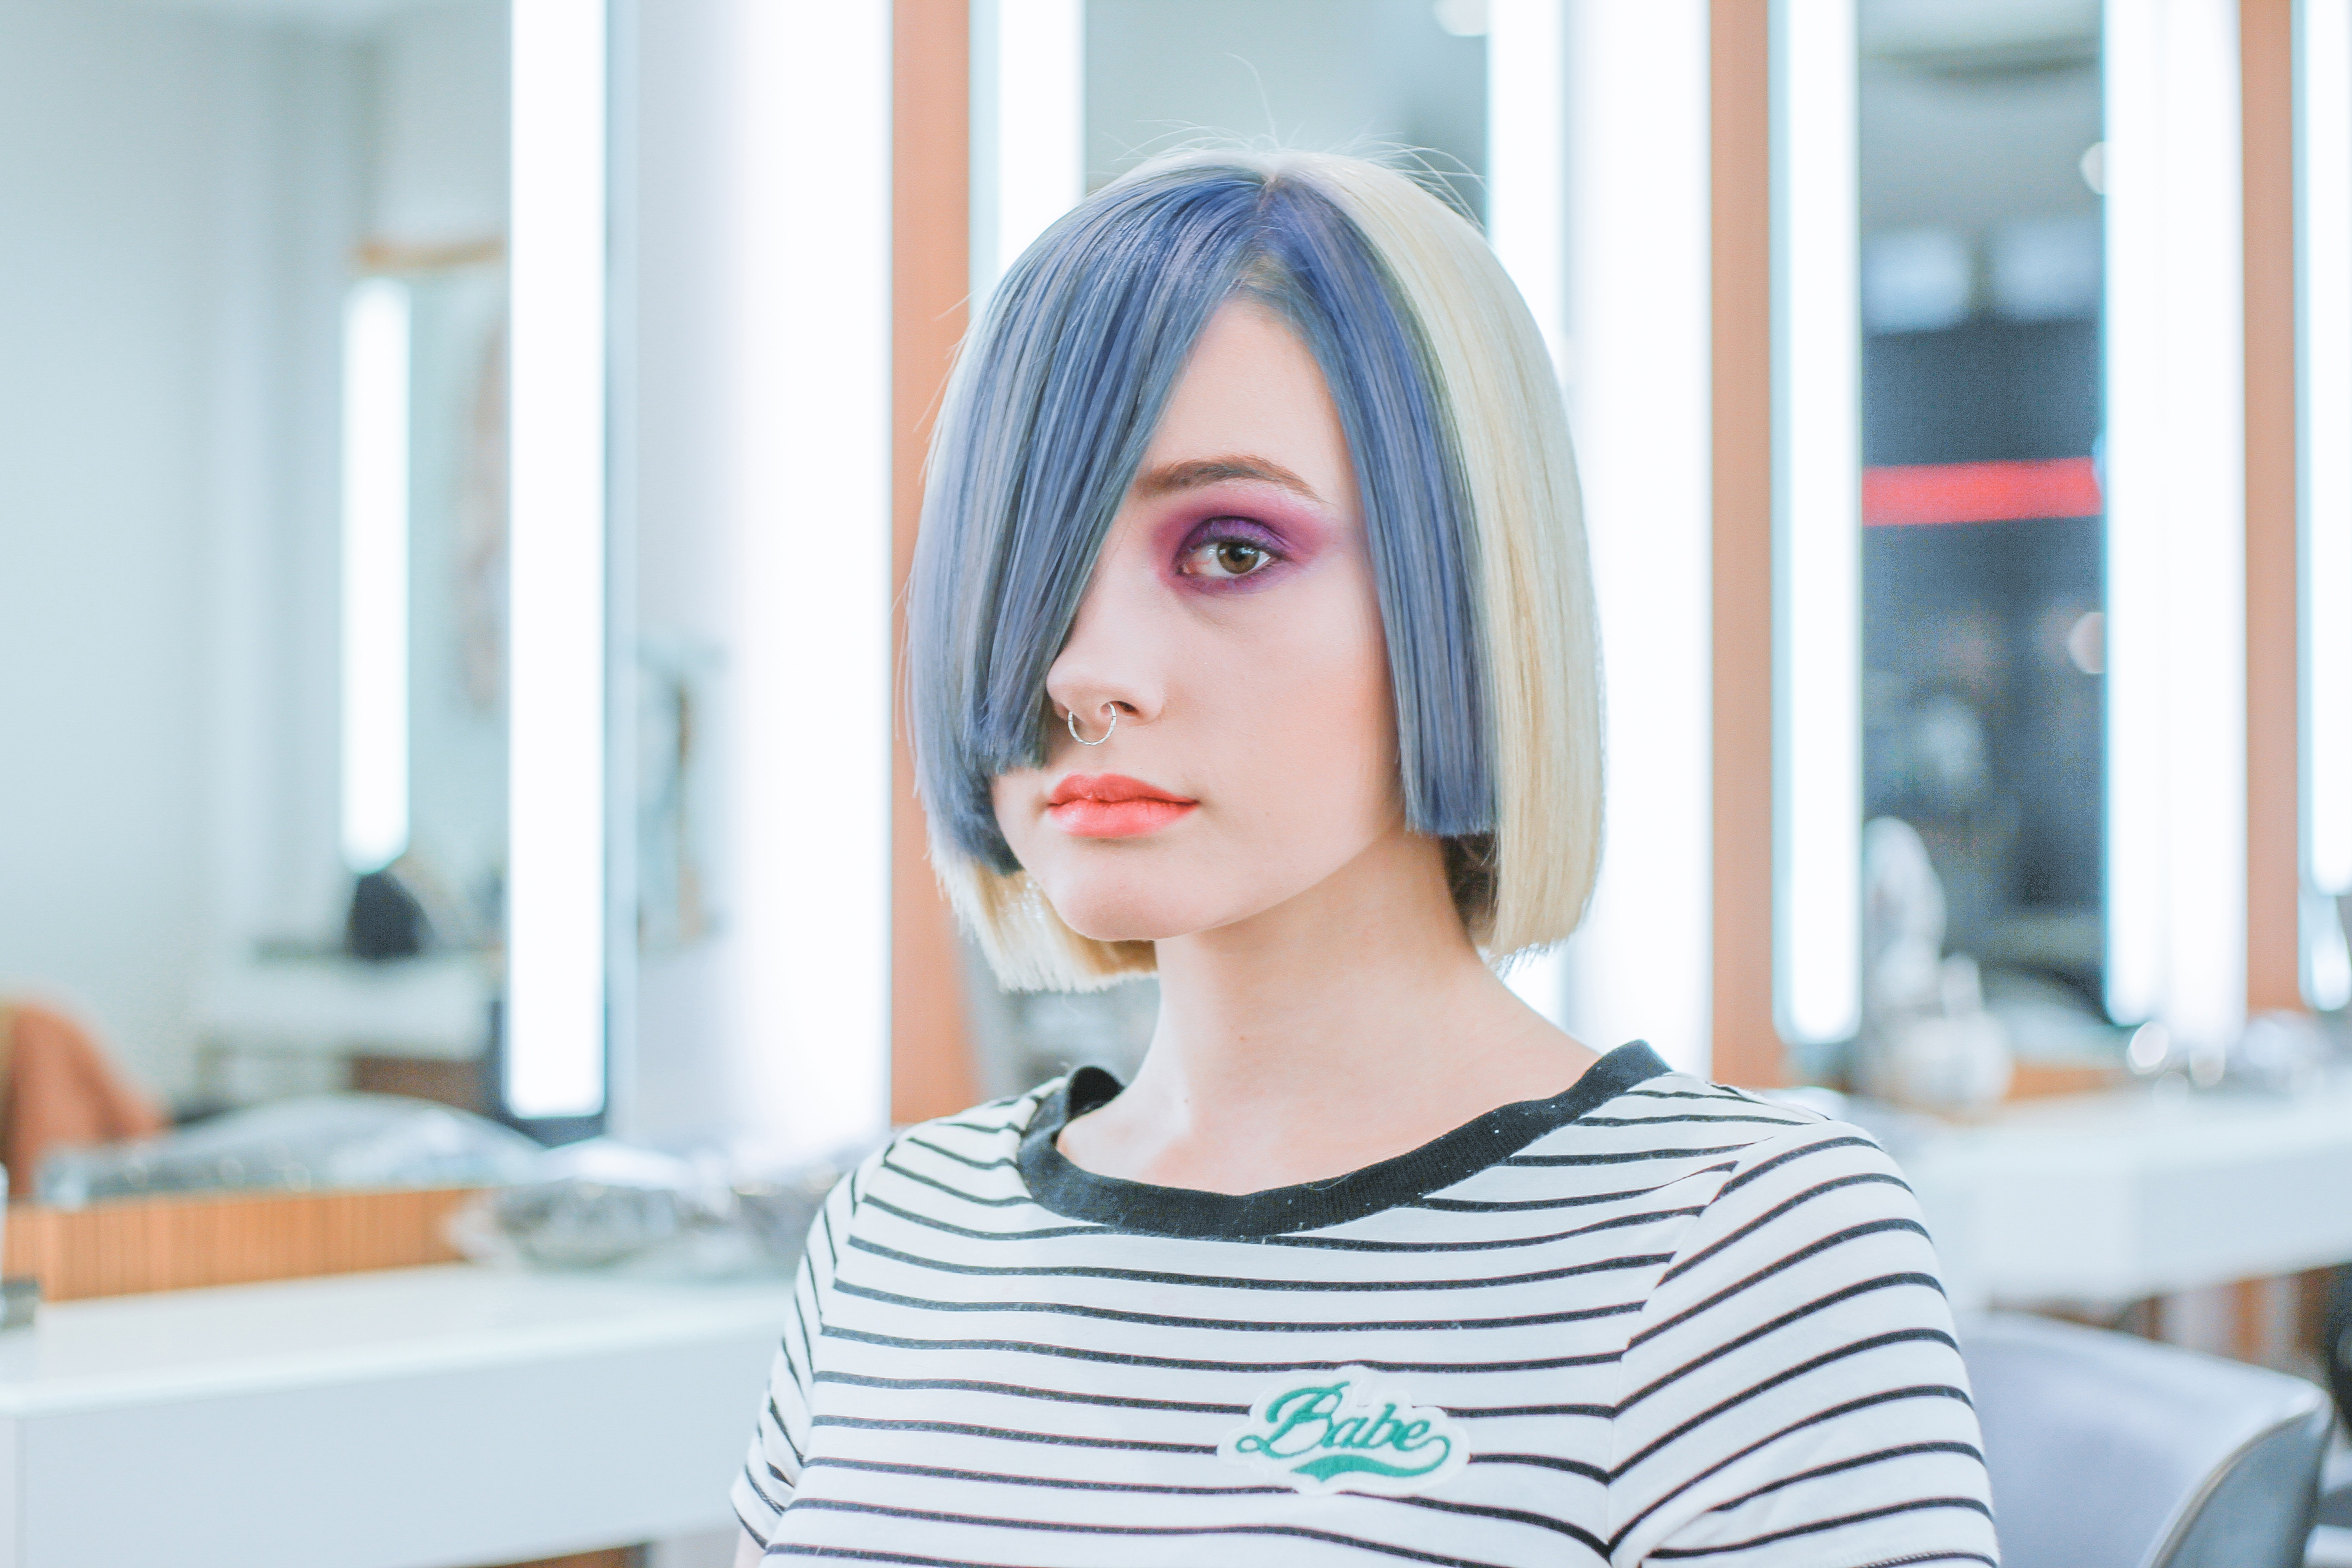 A girl with colourful hair leaving the salon